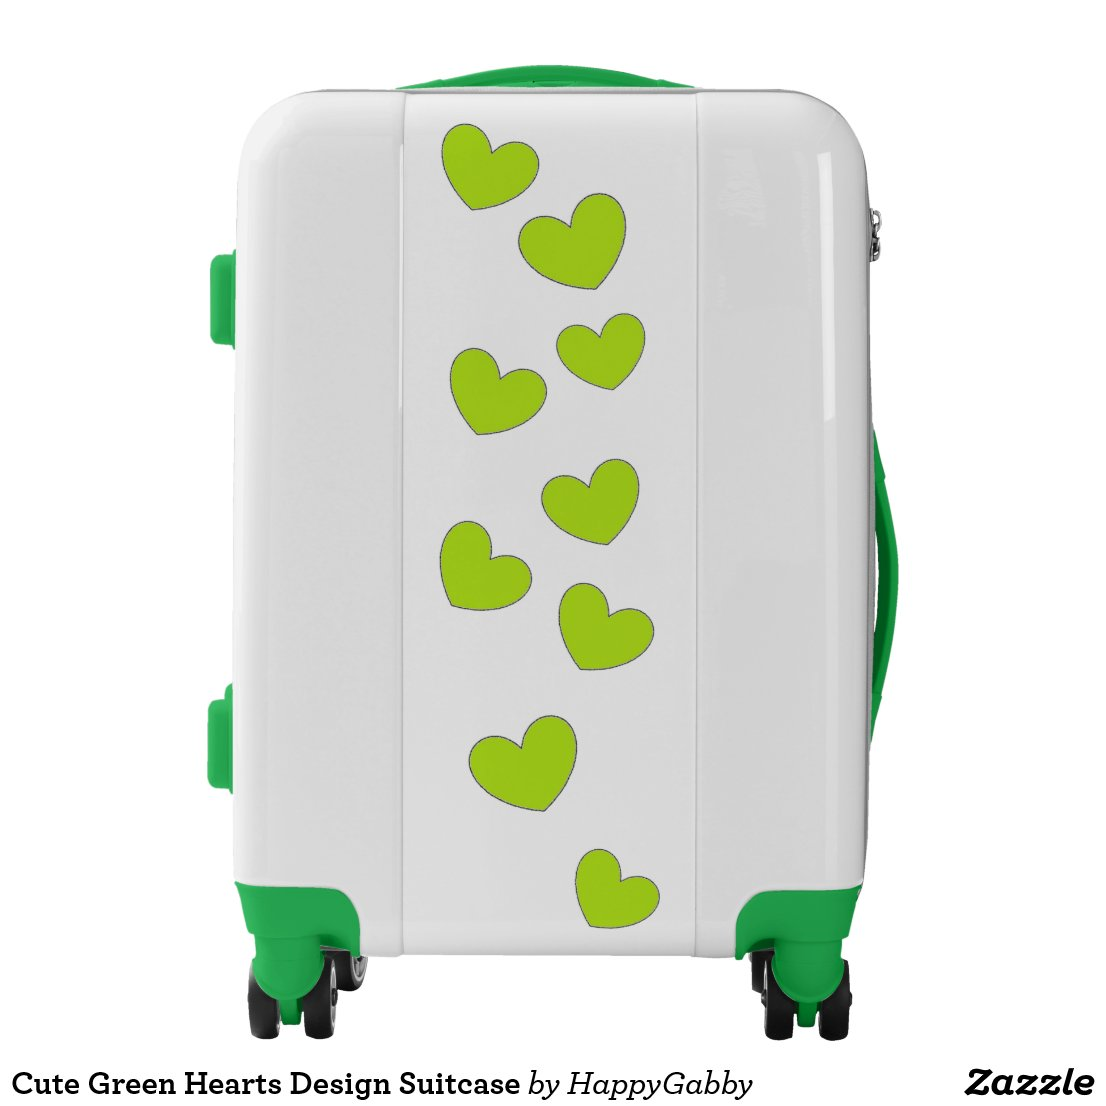 Green Hearts Design Suitcase